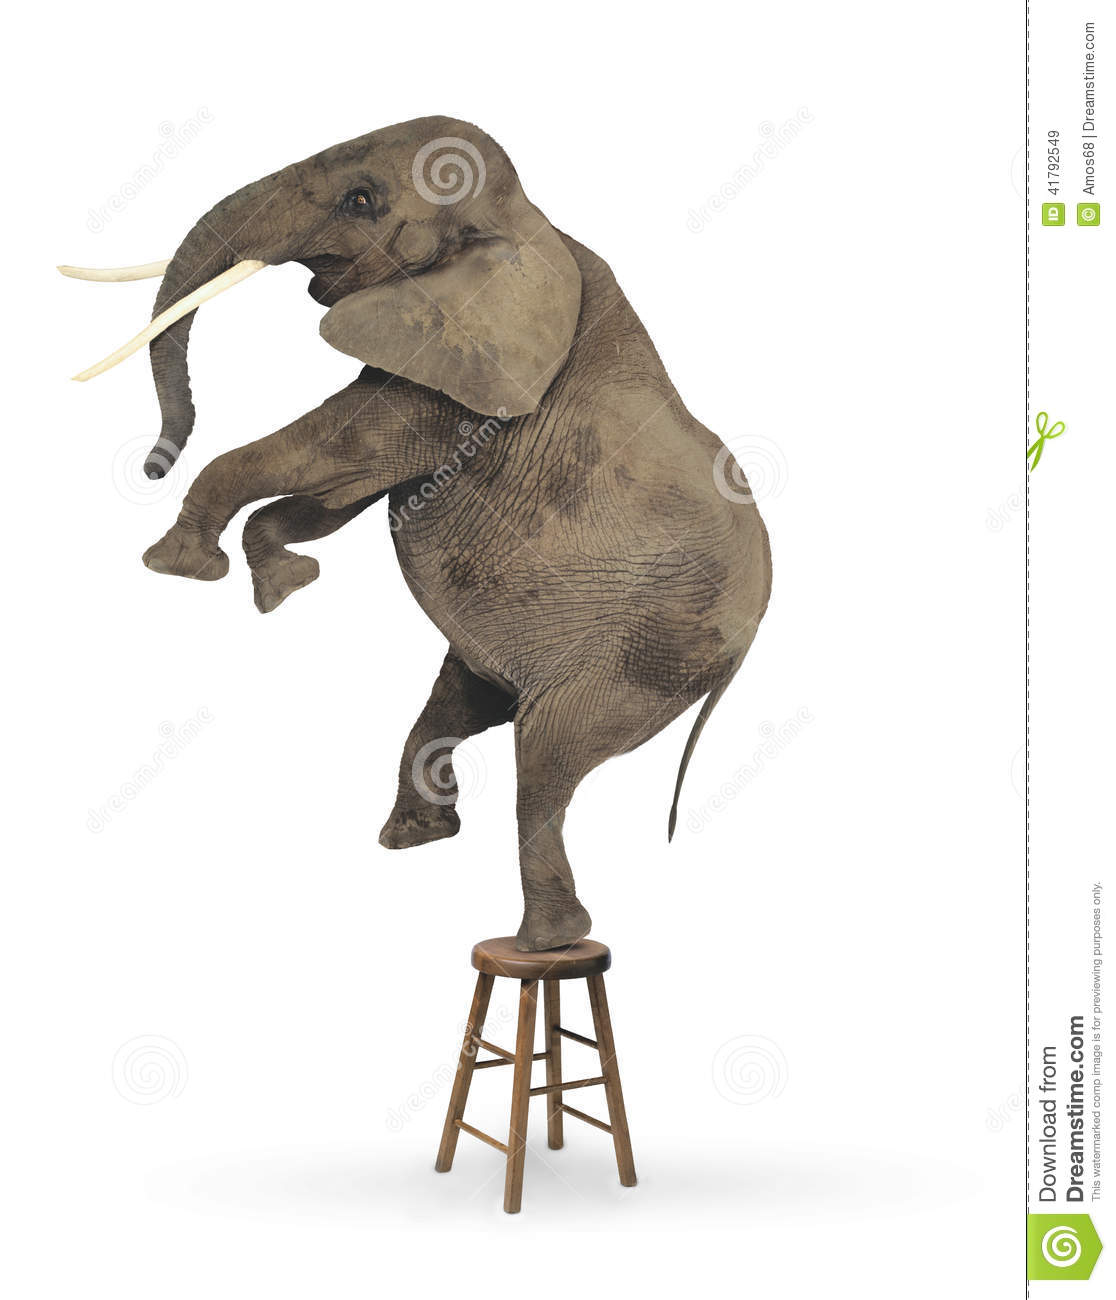 elephant acrobat stock illustration image 41792549 circus elephant clipart circus elephant clipart black and white